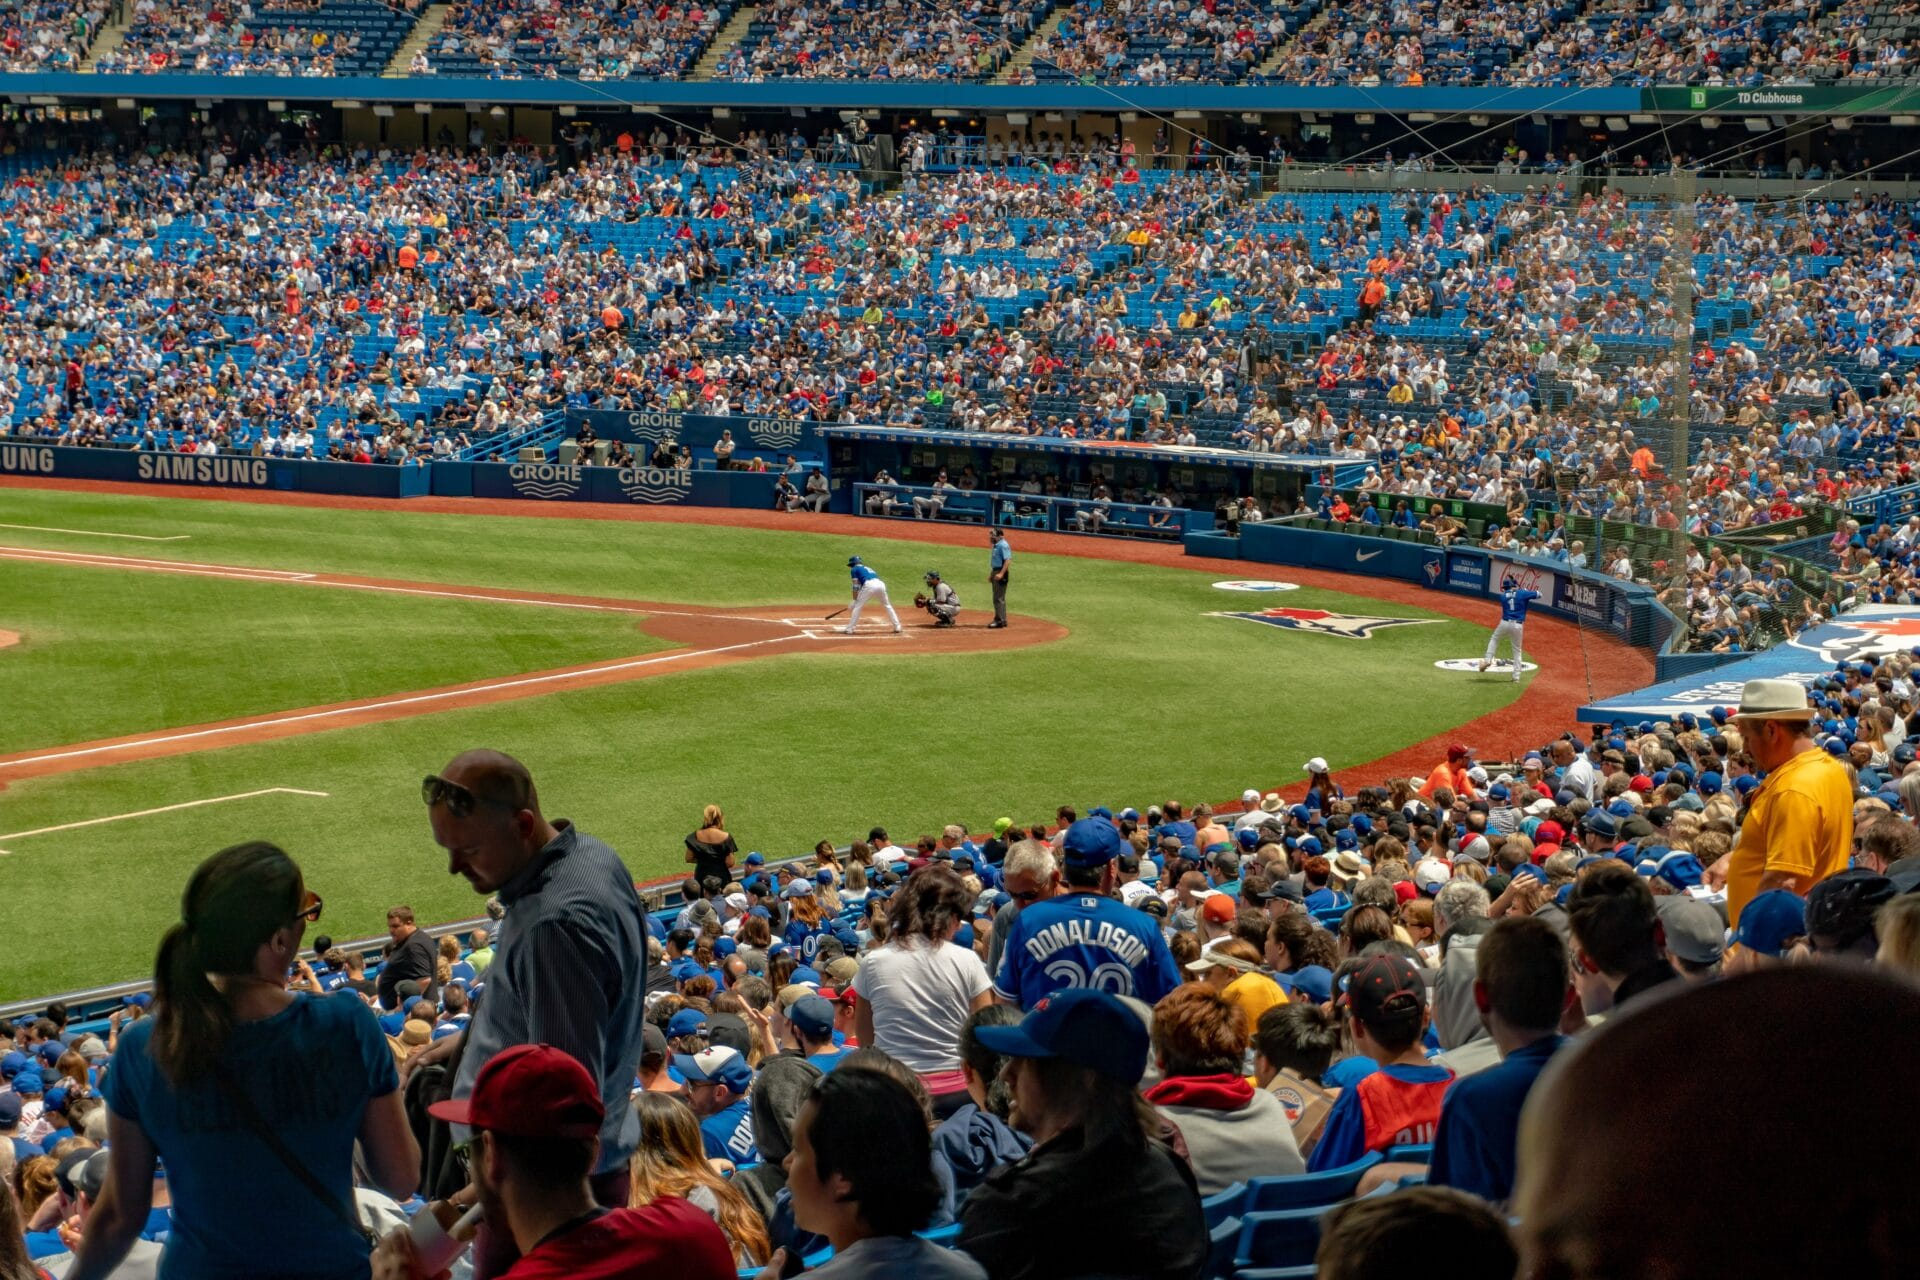 Crowd of people in a baseball stadium